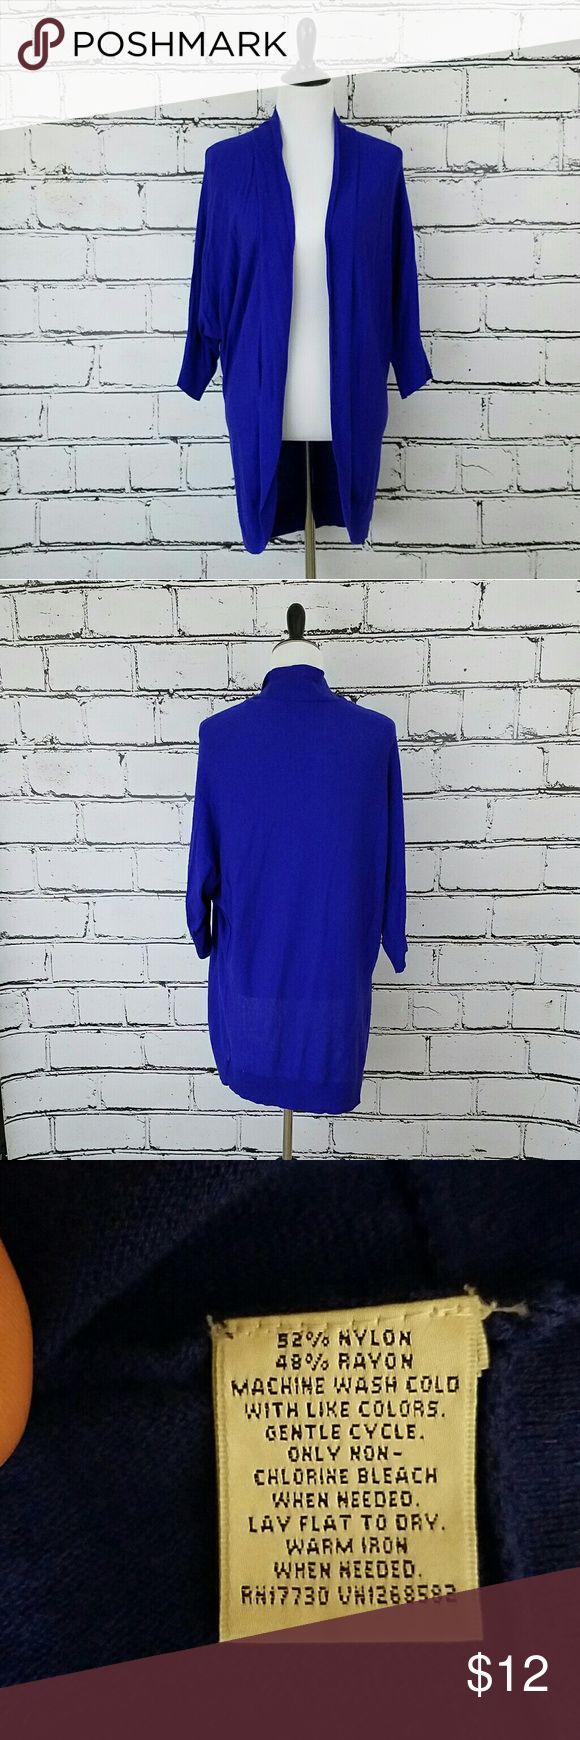 Lightweight Open Cardigan! Cobalt blue lightweight open cardigan sweater. Length is about 31 inches. Great condition! Mossimo Supply Co. Sweaters Cardigans